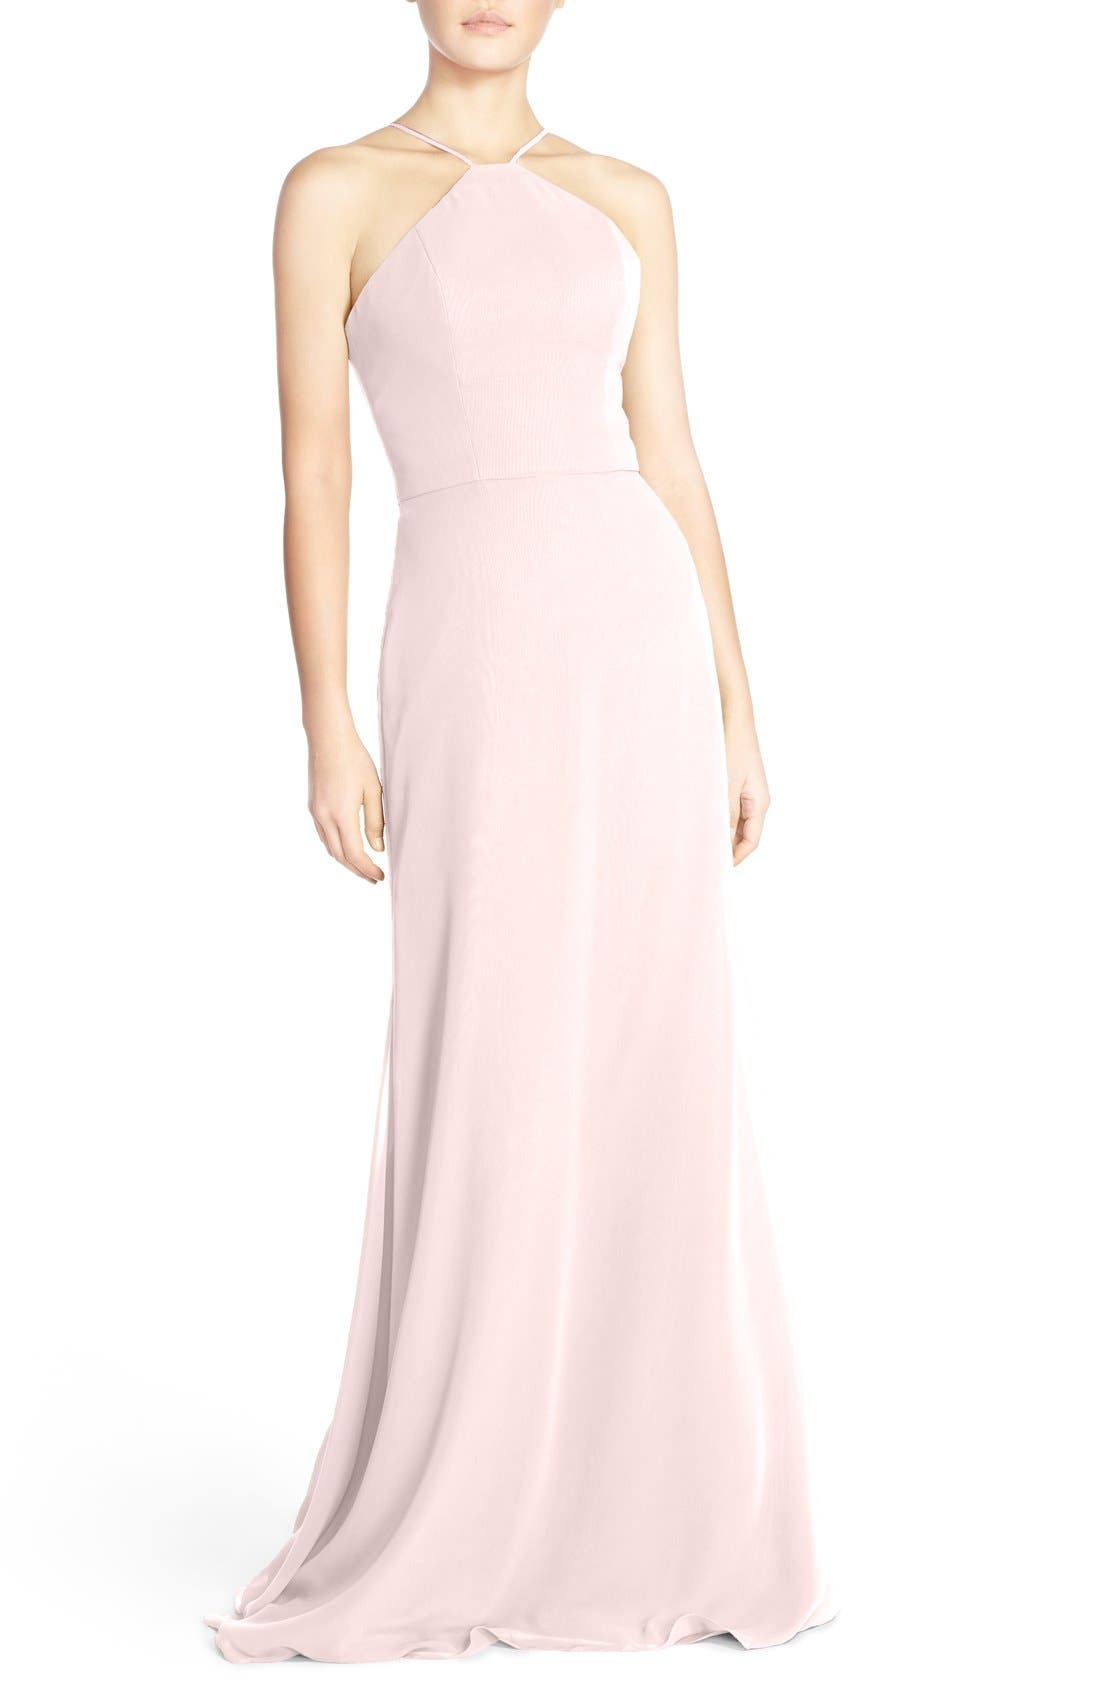 HAYLEY PAIGE OCCASIONS,                             Strappy V-Back Chiffon Halter Gown,                             Main thumbnail 1, color,                             BLUSH/ CASHMERE